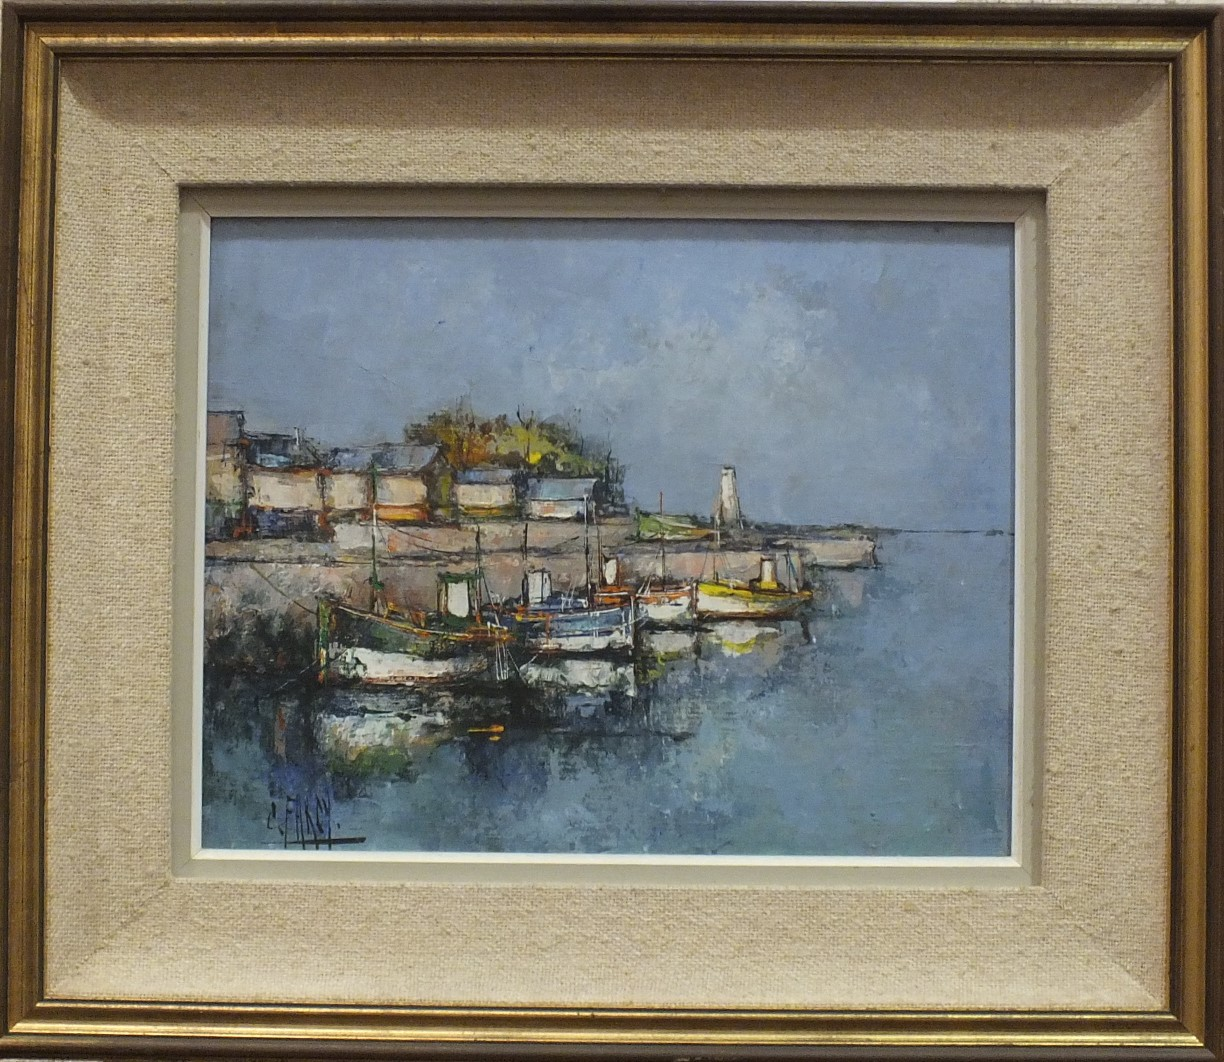 Lot 32 - Cristina Farcy (20th century French School), The Quayside, signed oil on canvas, 31 x 42cm.